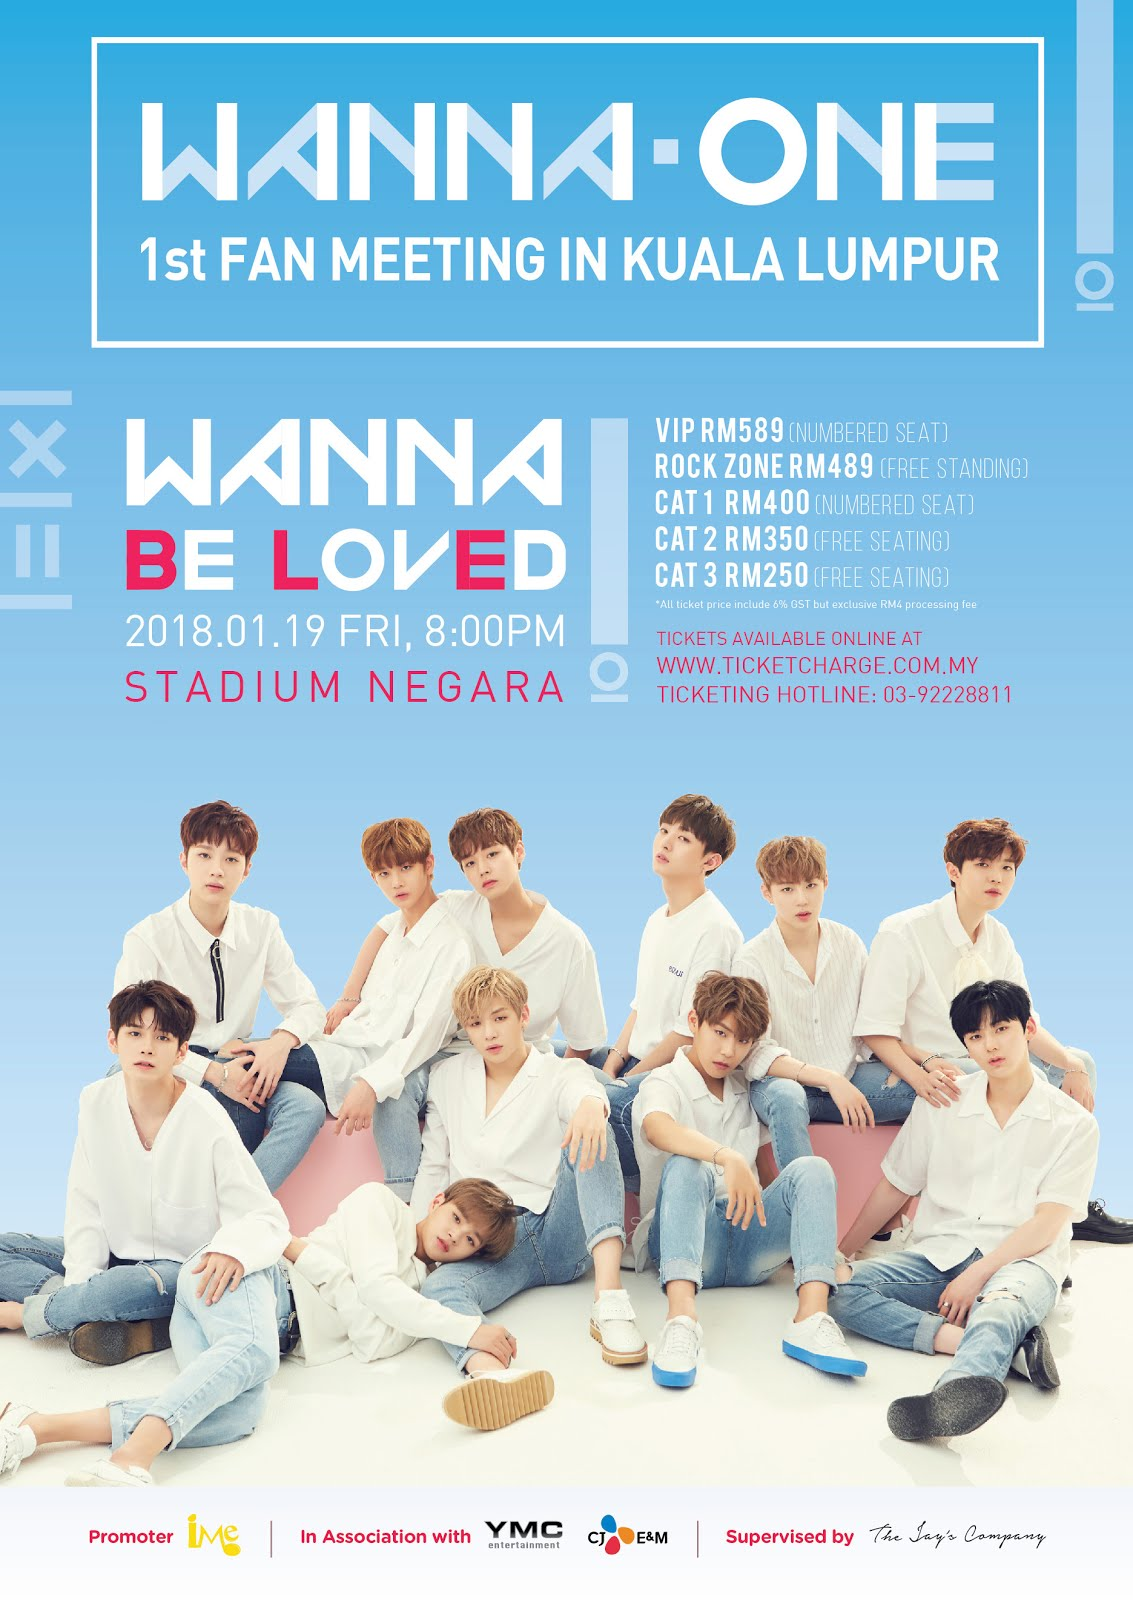 Gokpop malaysia awesome fan benefits meet greet autographed cd awesome fan benefits meet greet autographed cd poster exclusive selfie polaroid at wanna one 1st fan meeting in kl wanna be loved m4hsunfo